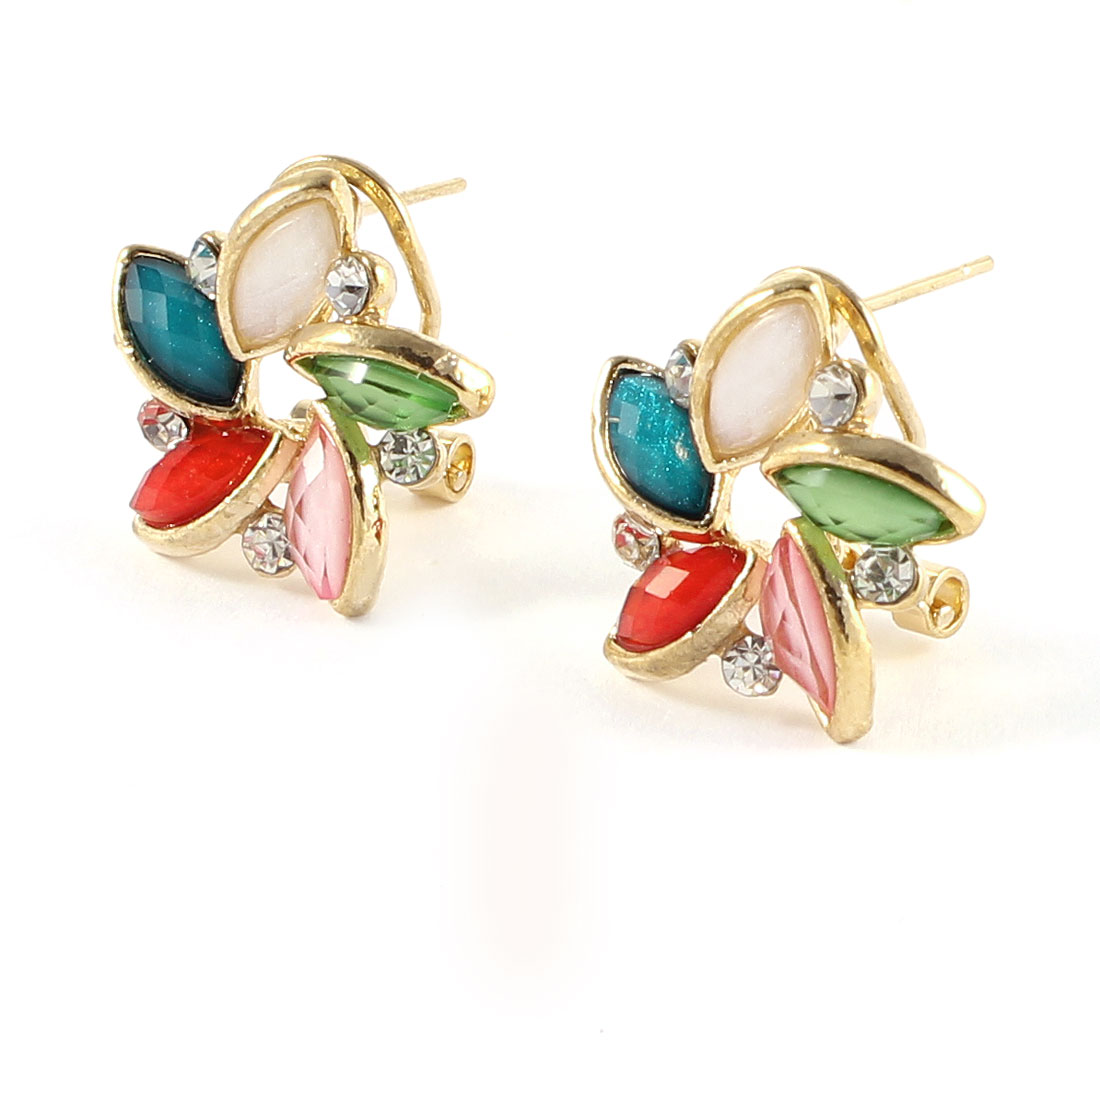 Pair Rhinestones Inlaid Metal Colorful Flower French Clip Earrings Stud